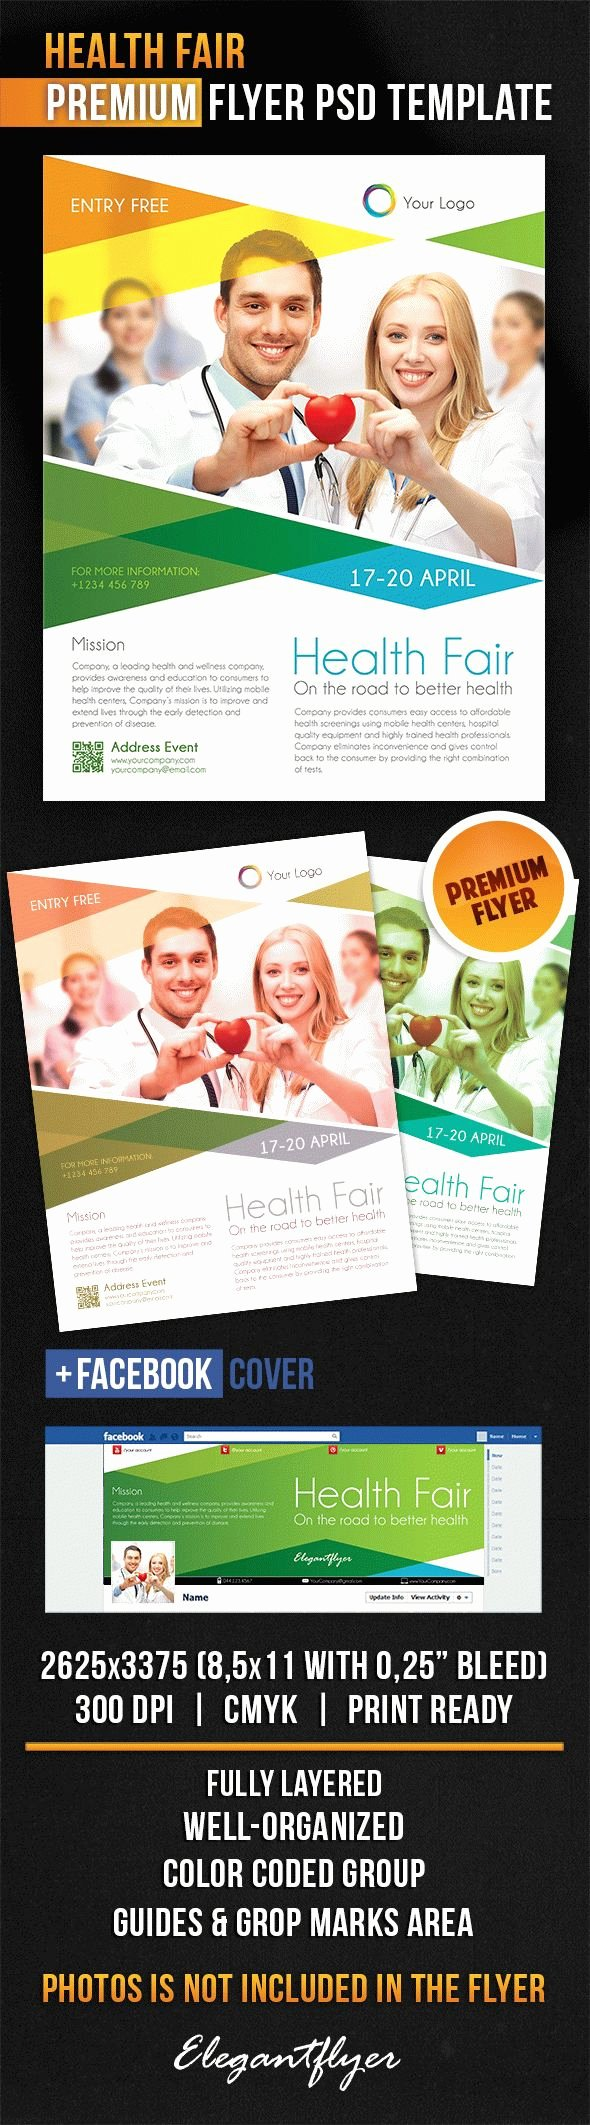 Health Fair – Flyer Psd Template – by Elegantflyer